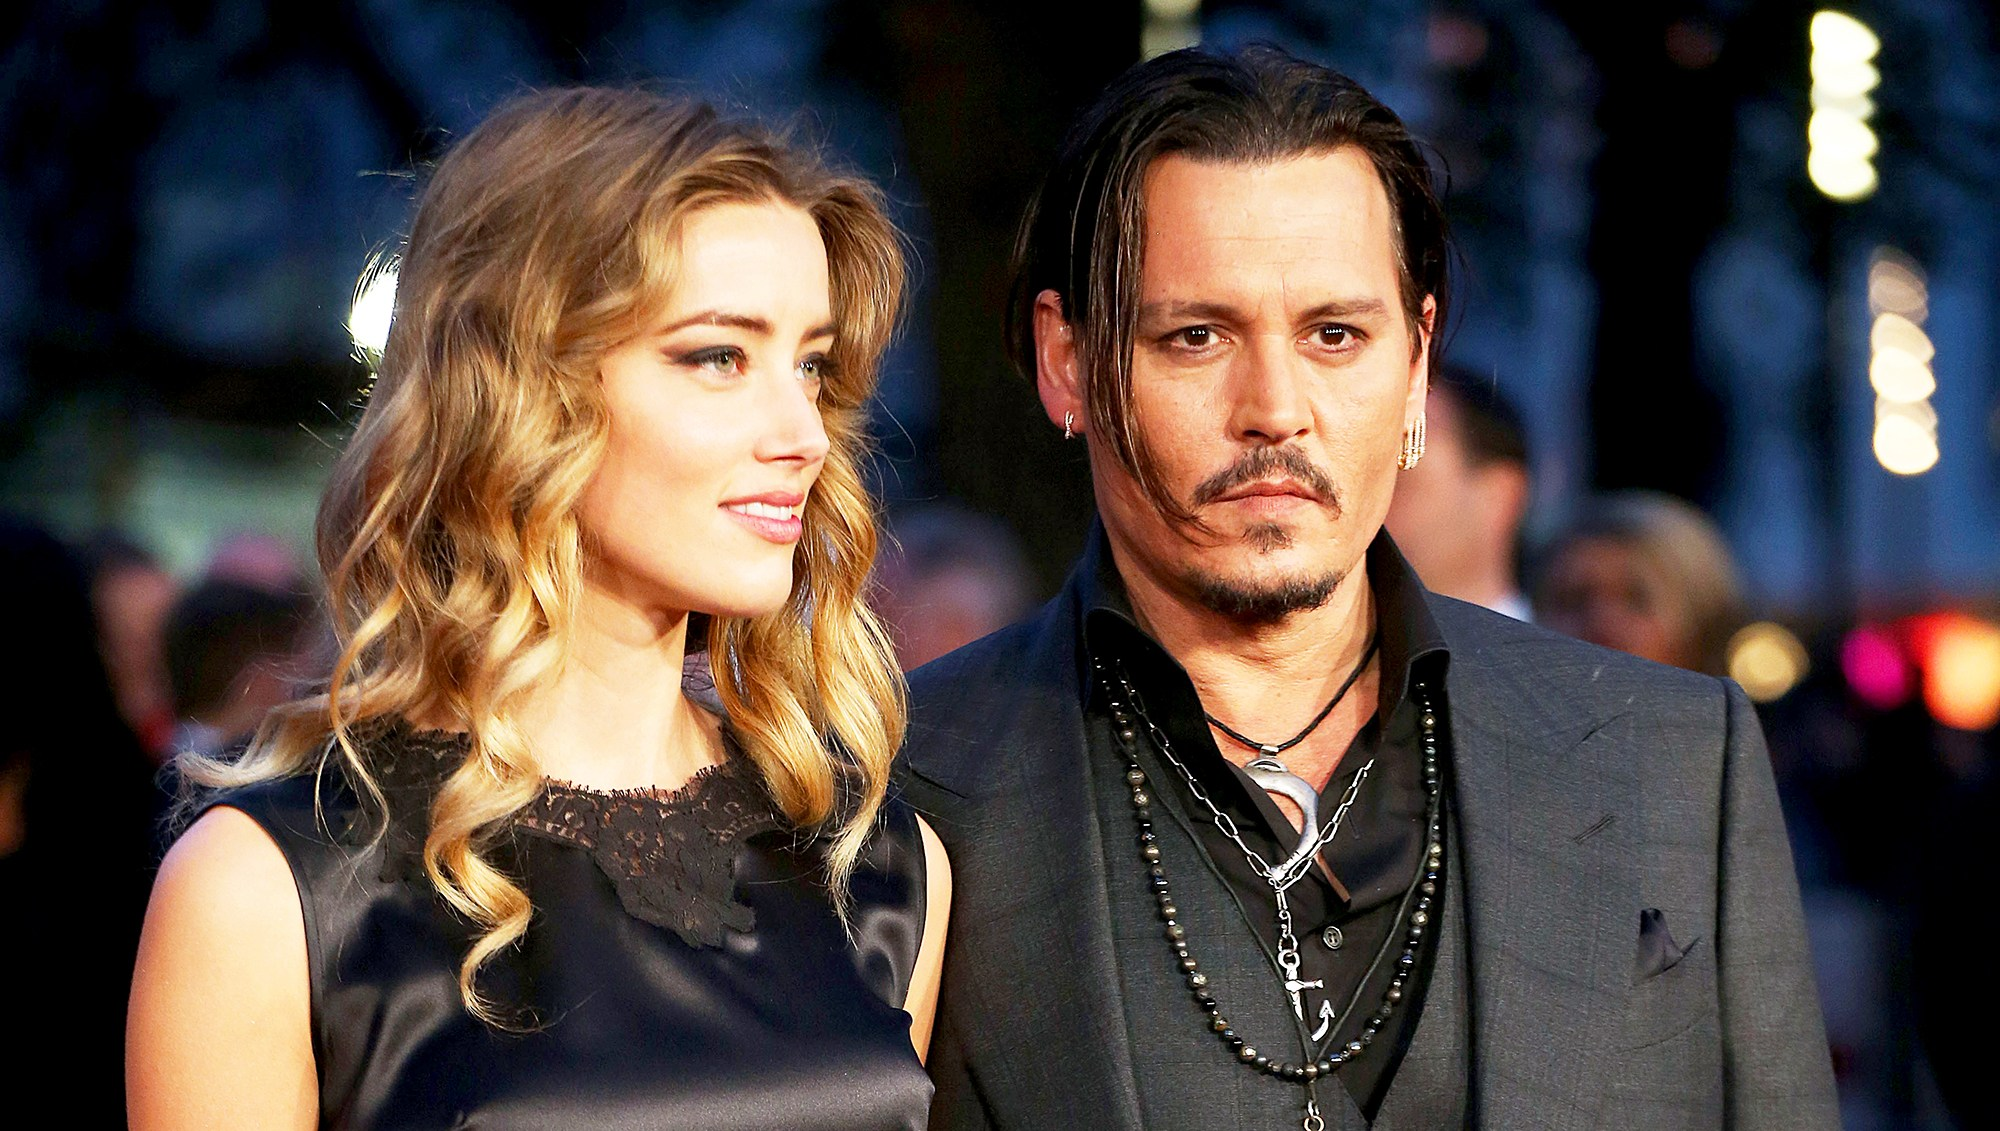 Amber Heard and Johnny Depp attend a screening of 'Black Mass' during the BFI London Film Festival at Odeon Leicester Square in London, England.